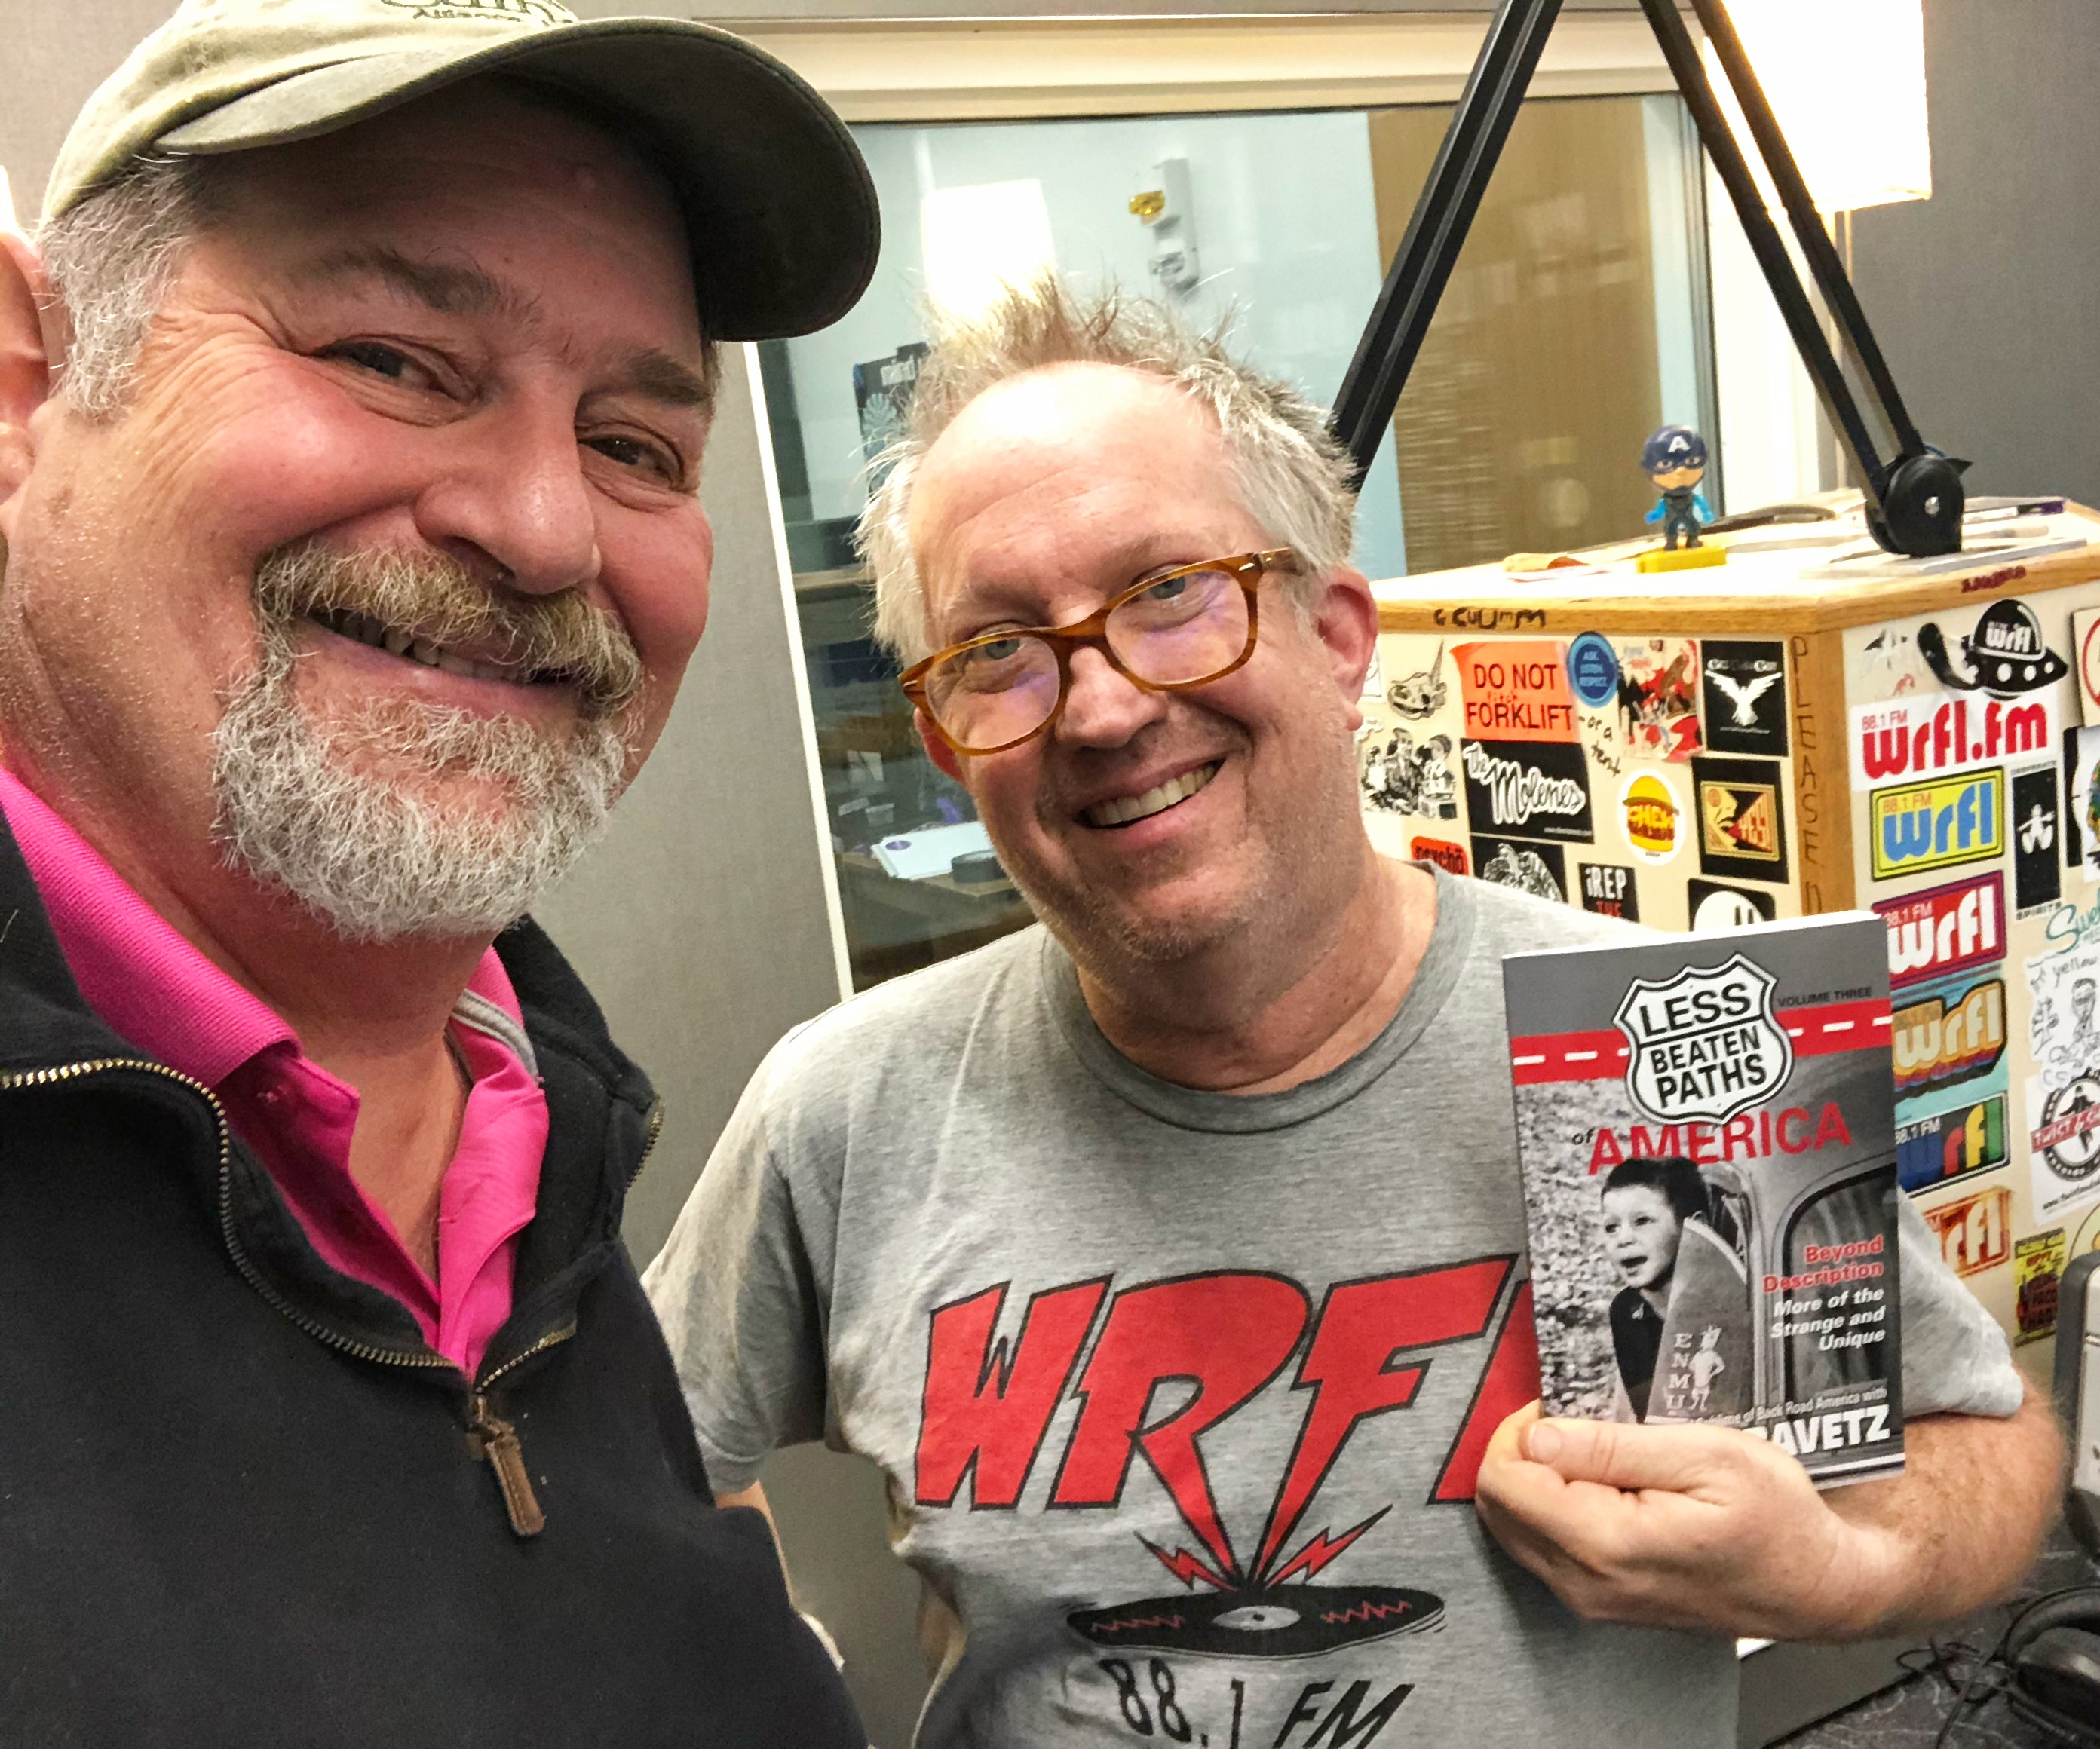 Radio Interview on WRFL Trivial Thursdays with Mick Jeffries – November 7, 2019